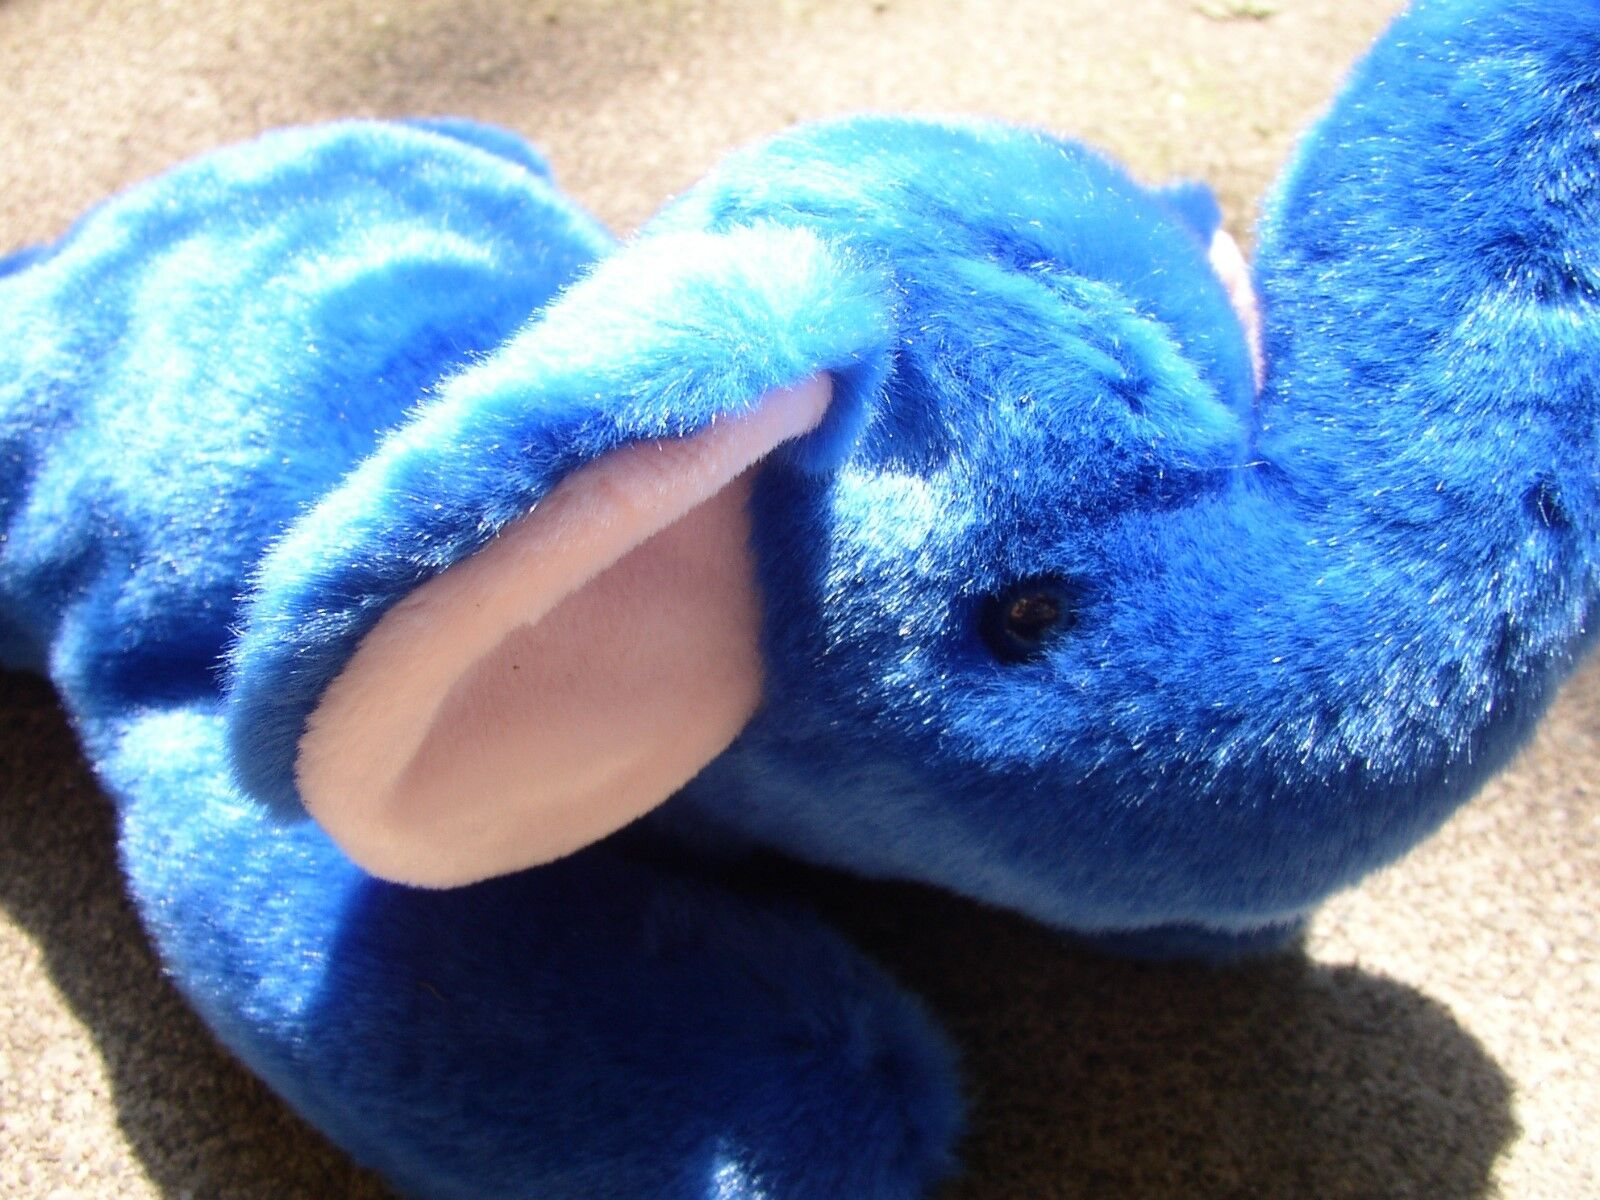 Peanut TY - The Royal bluee Elephant Buddy